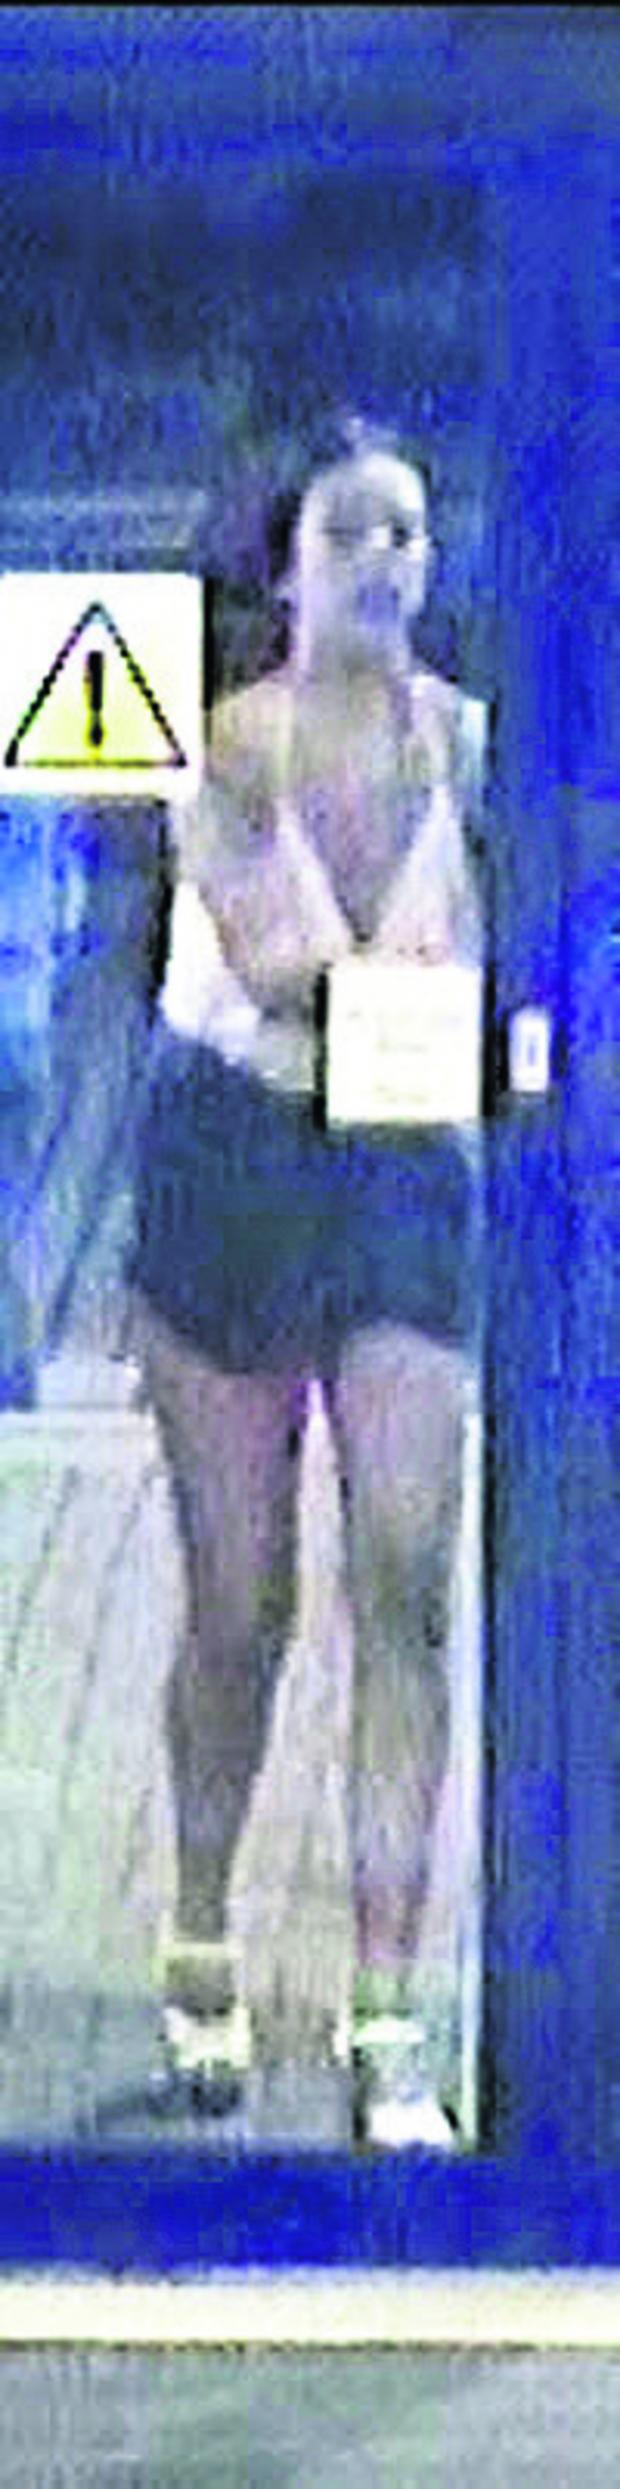 The Oxford Times: CCTV image of the woman British Transport Police want to talk to